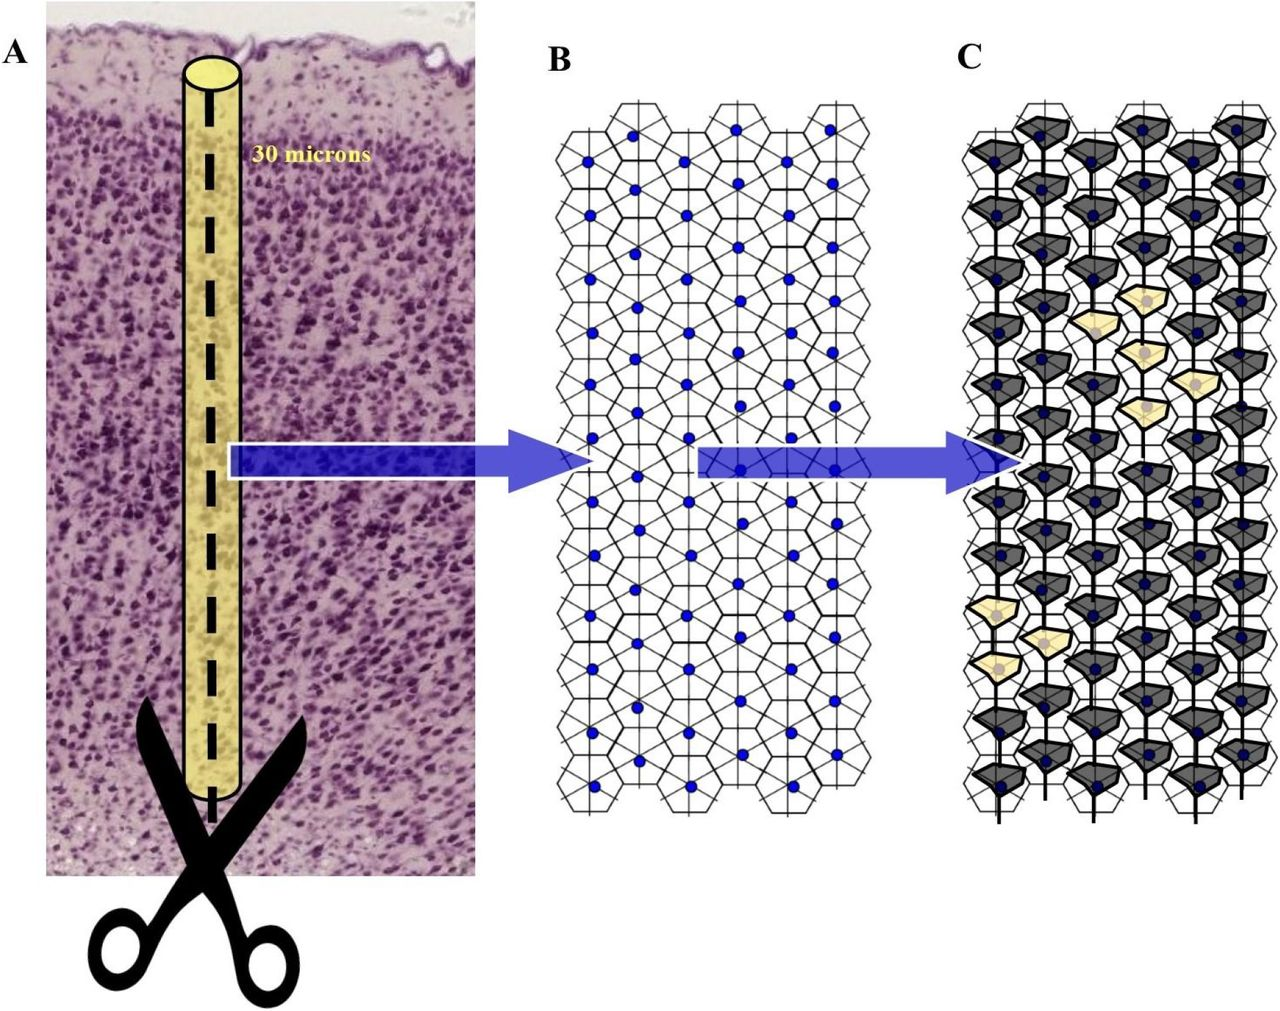 Neuronal Barcodes Shape Complex Networks In The Brain >> Cracking The Barcodes Of Fullerene Like Cortical Microcolumns Biorxiv